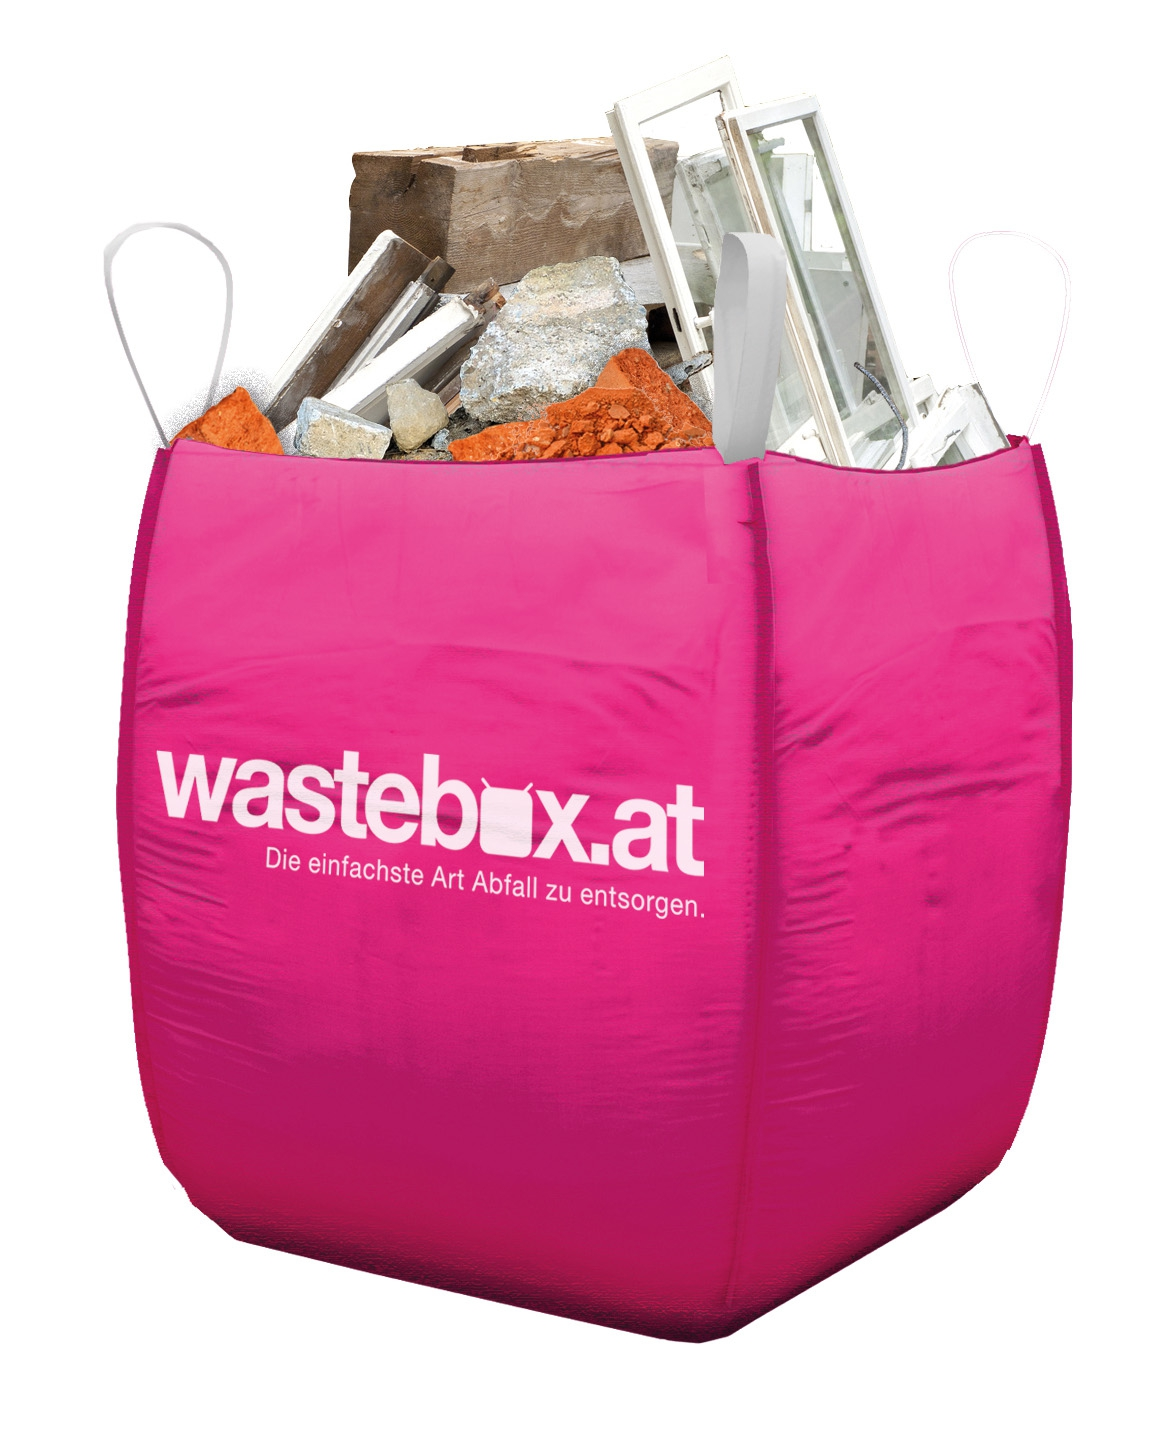 Die Saubermacher Wastebox / Foto: Saubermacher